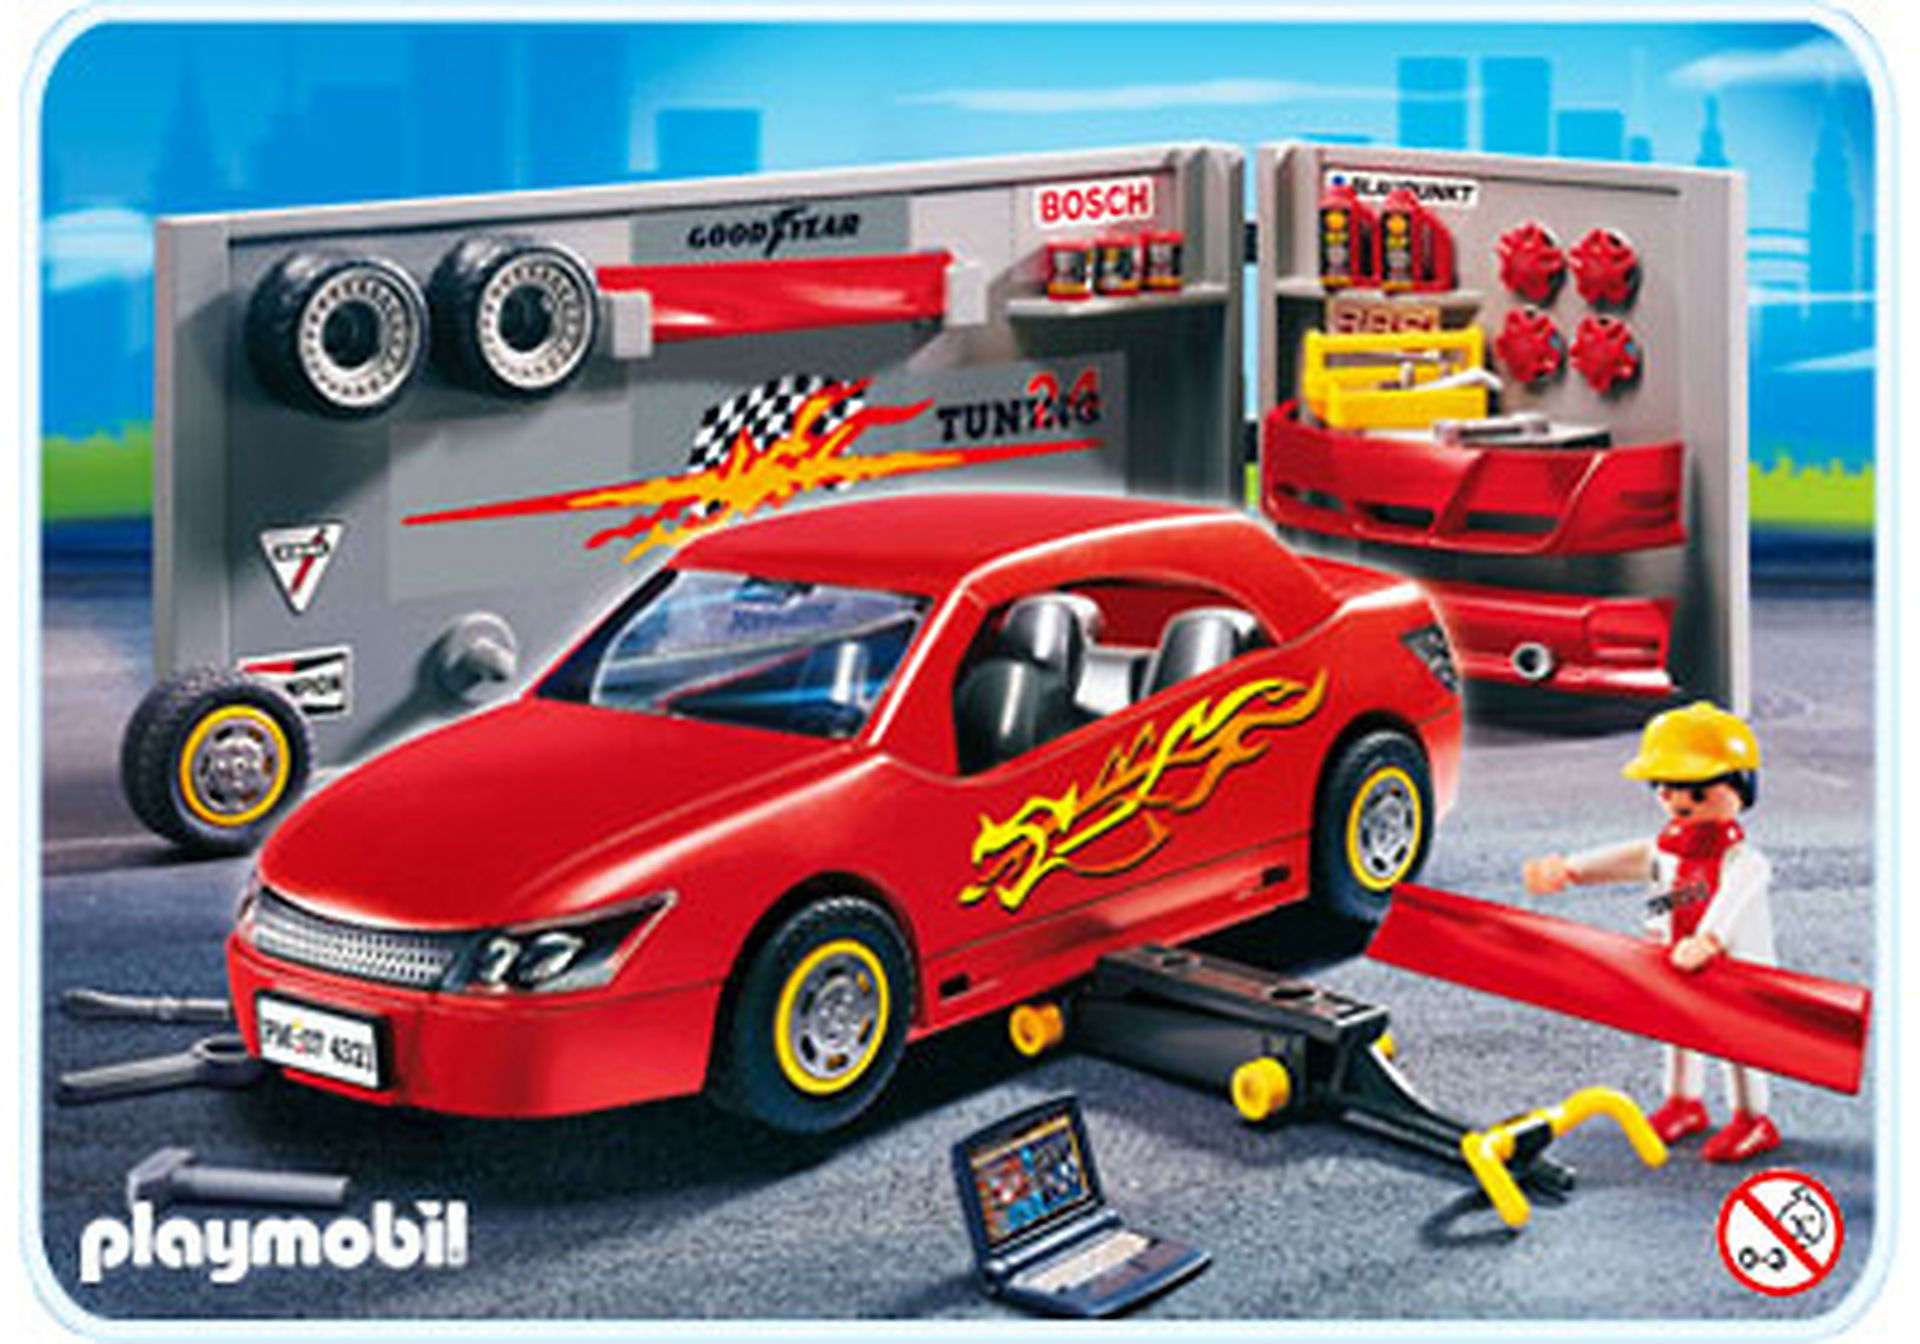 http://media.playmobil.com/i/playmobil/4321-A_product_detail/Voiture avec atelier tuning